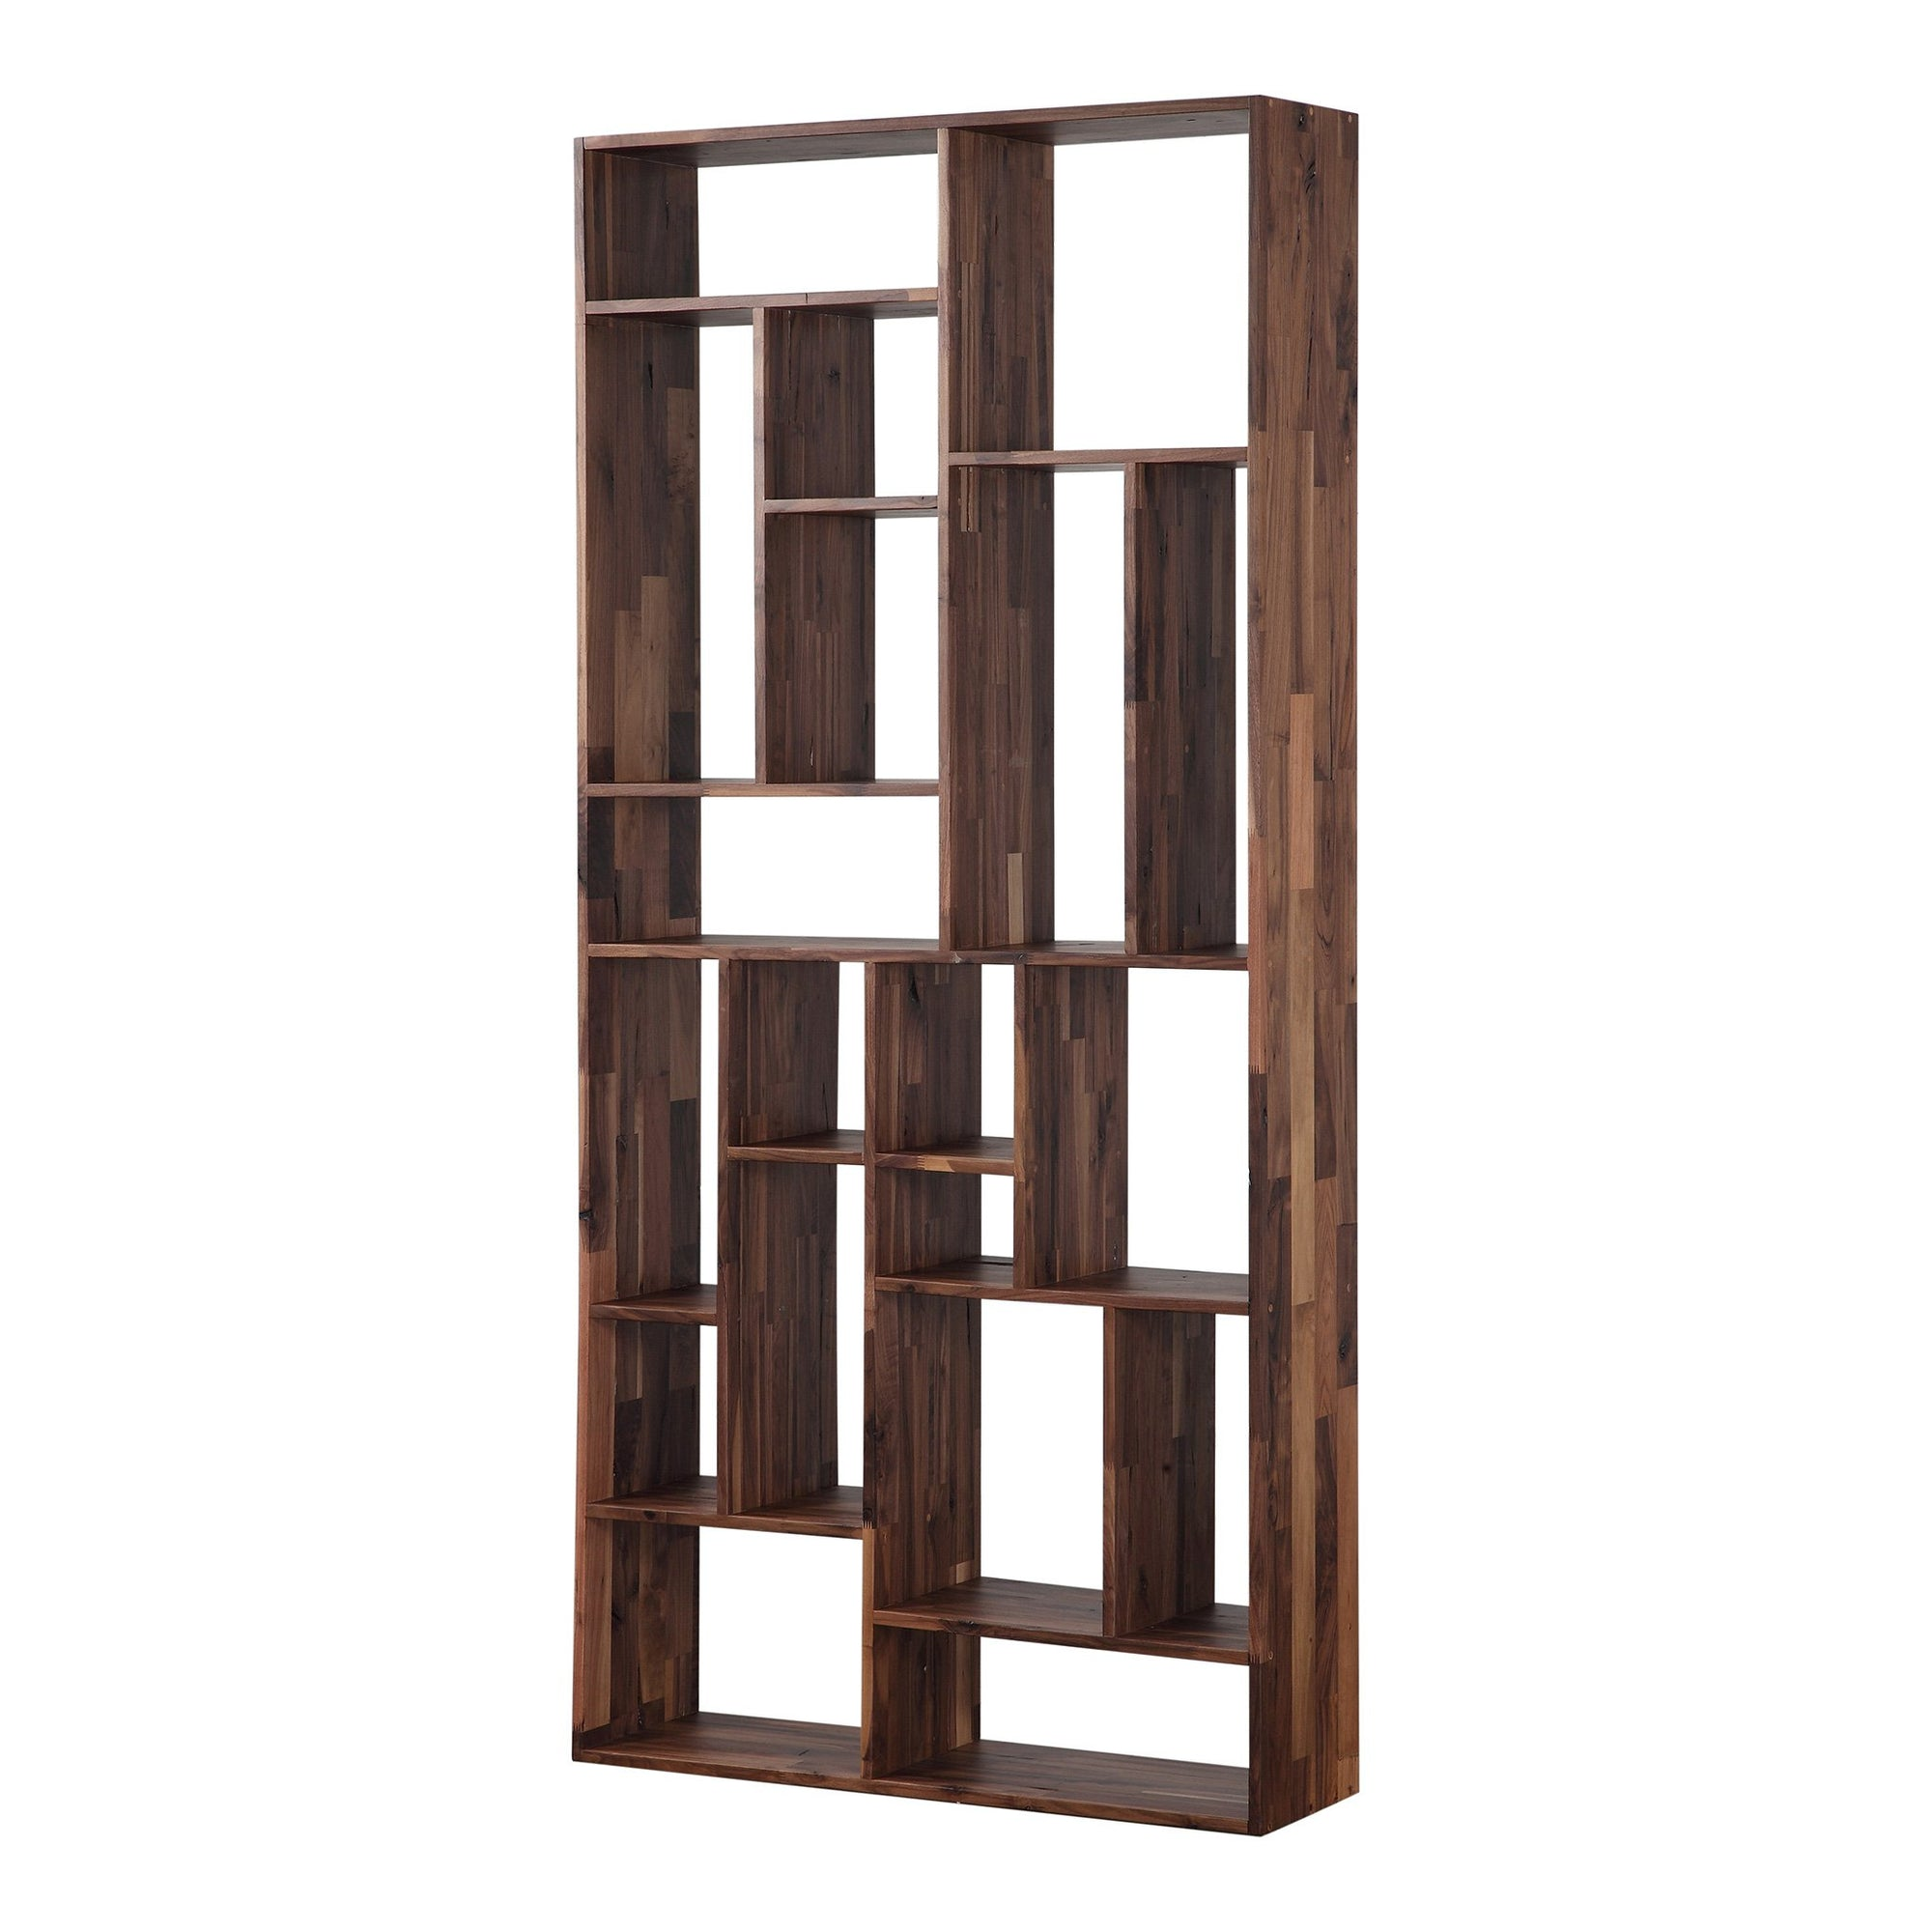 MOES-REDEMPTION SHELF SOLID LARGE-Bookcases & Shelving-MODTEMPO